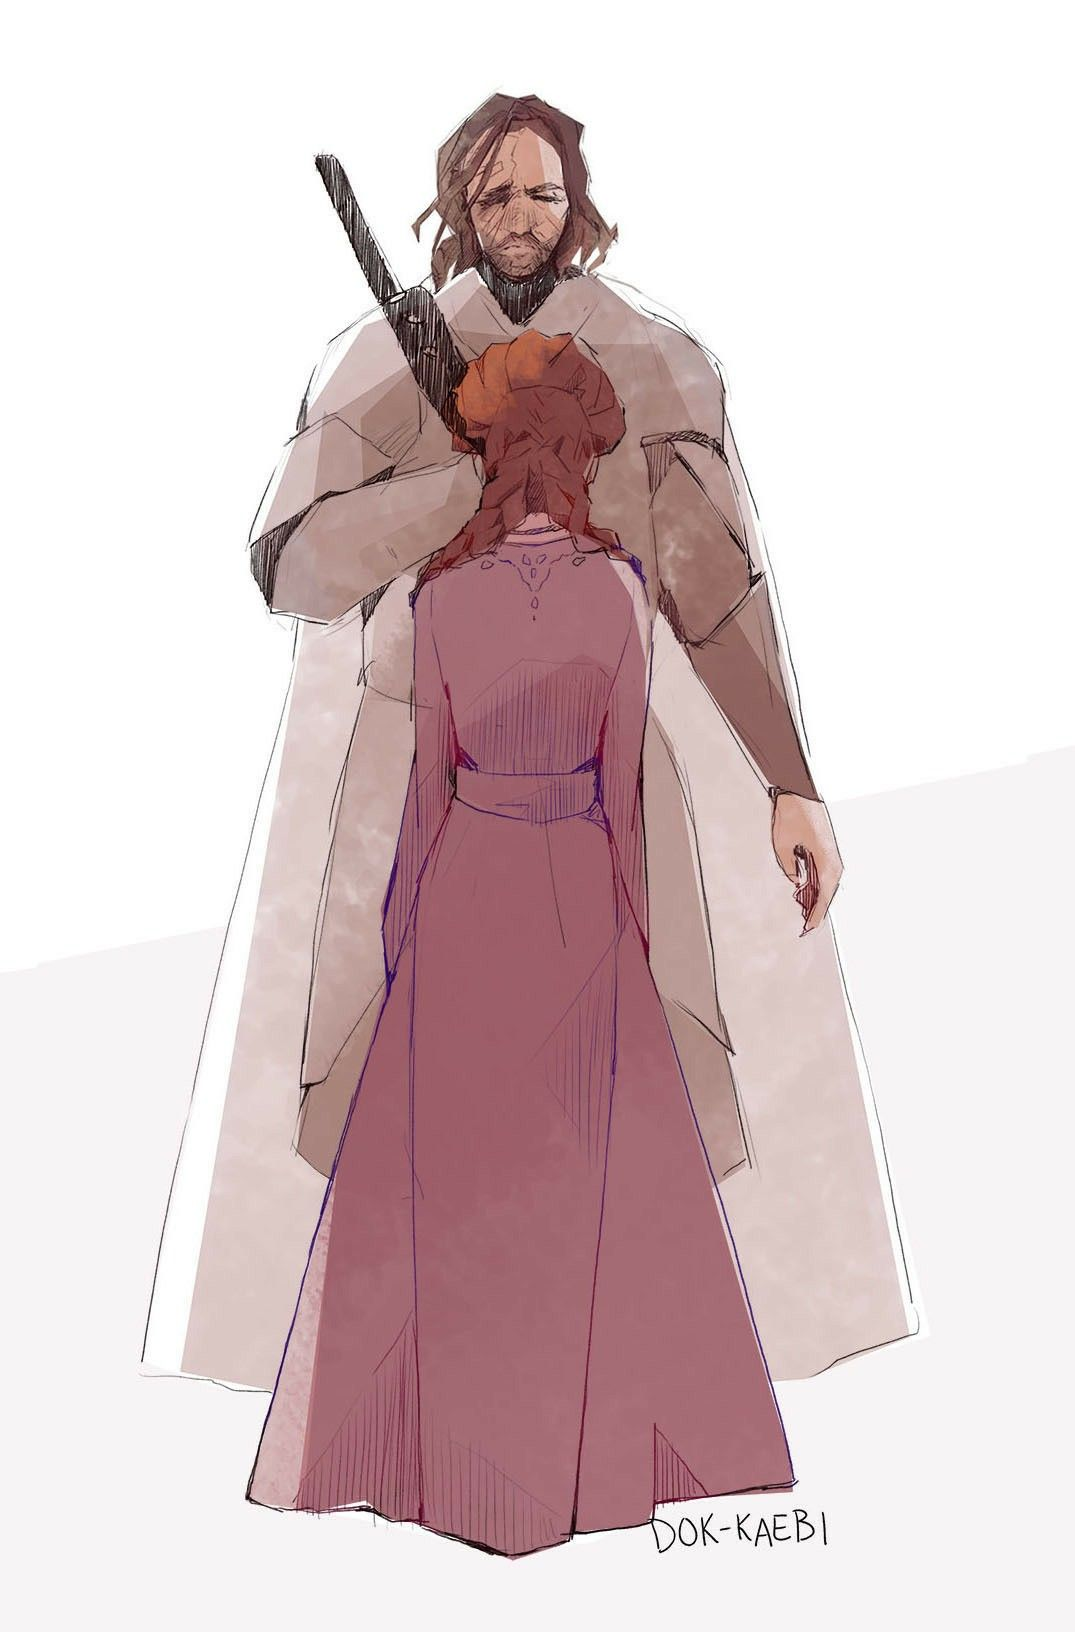 Pin By Kelly Yeary On Geek Chic The Hound And Sansa Game Of Thrones Art Game Of Thrones Fans